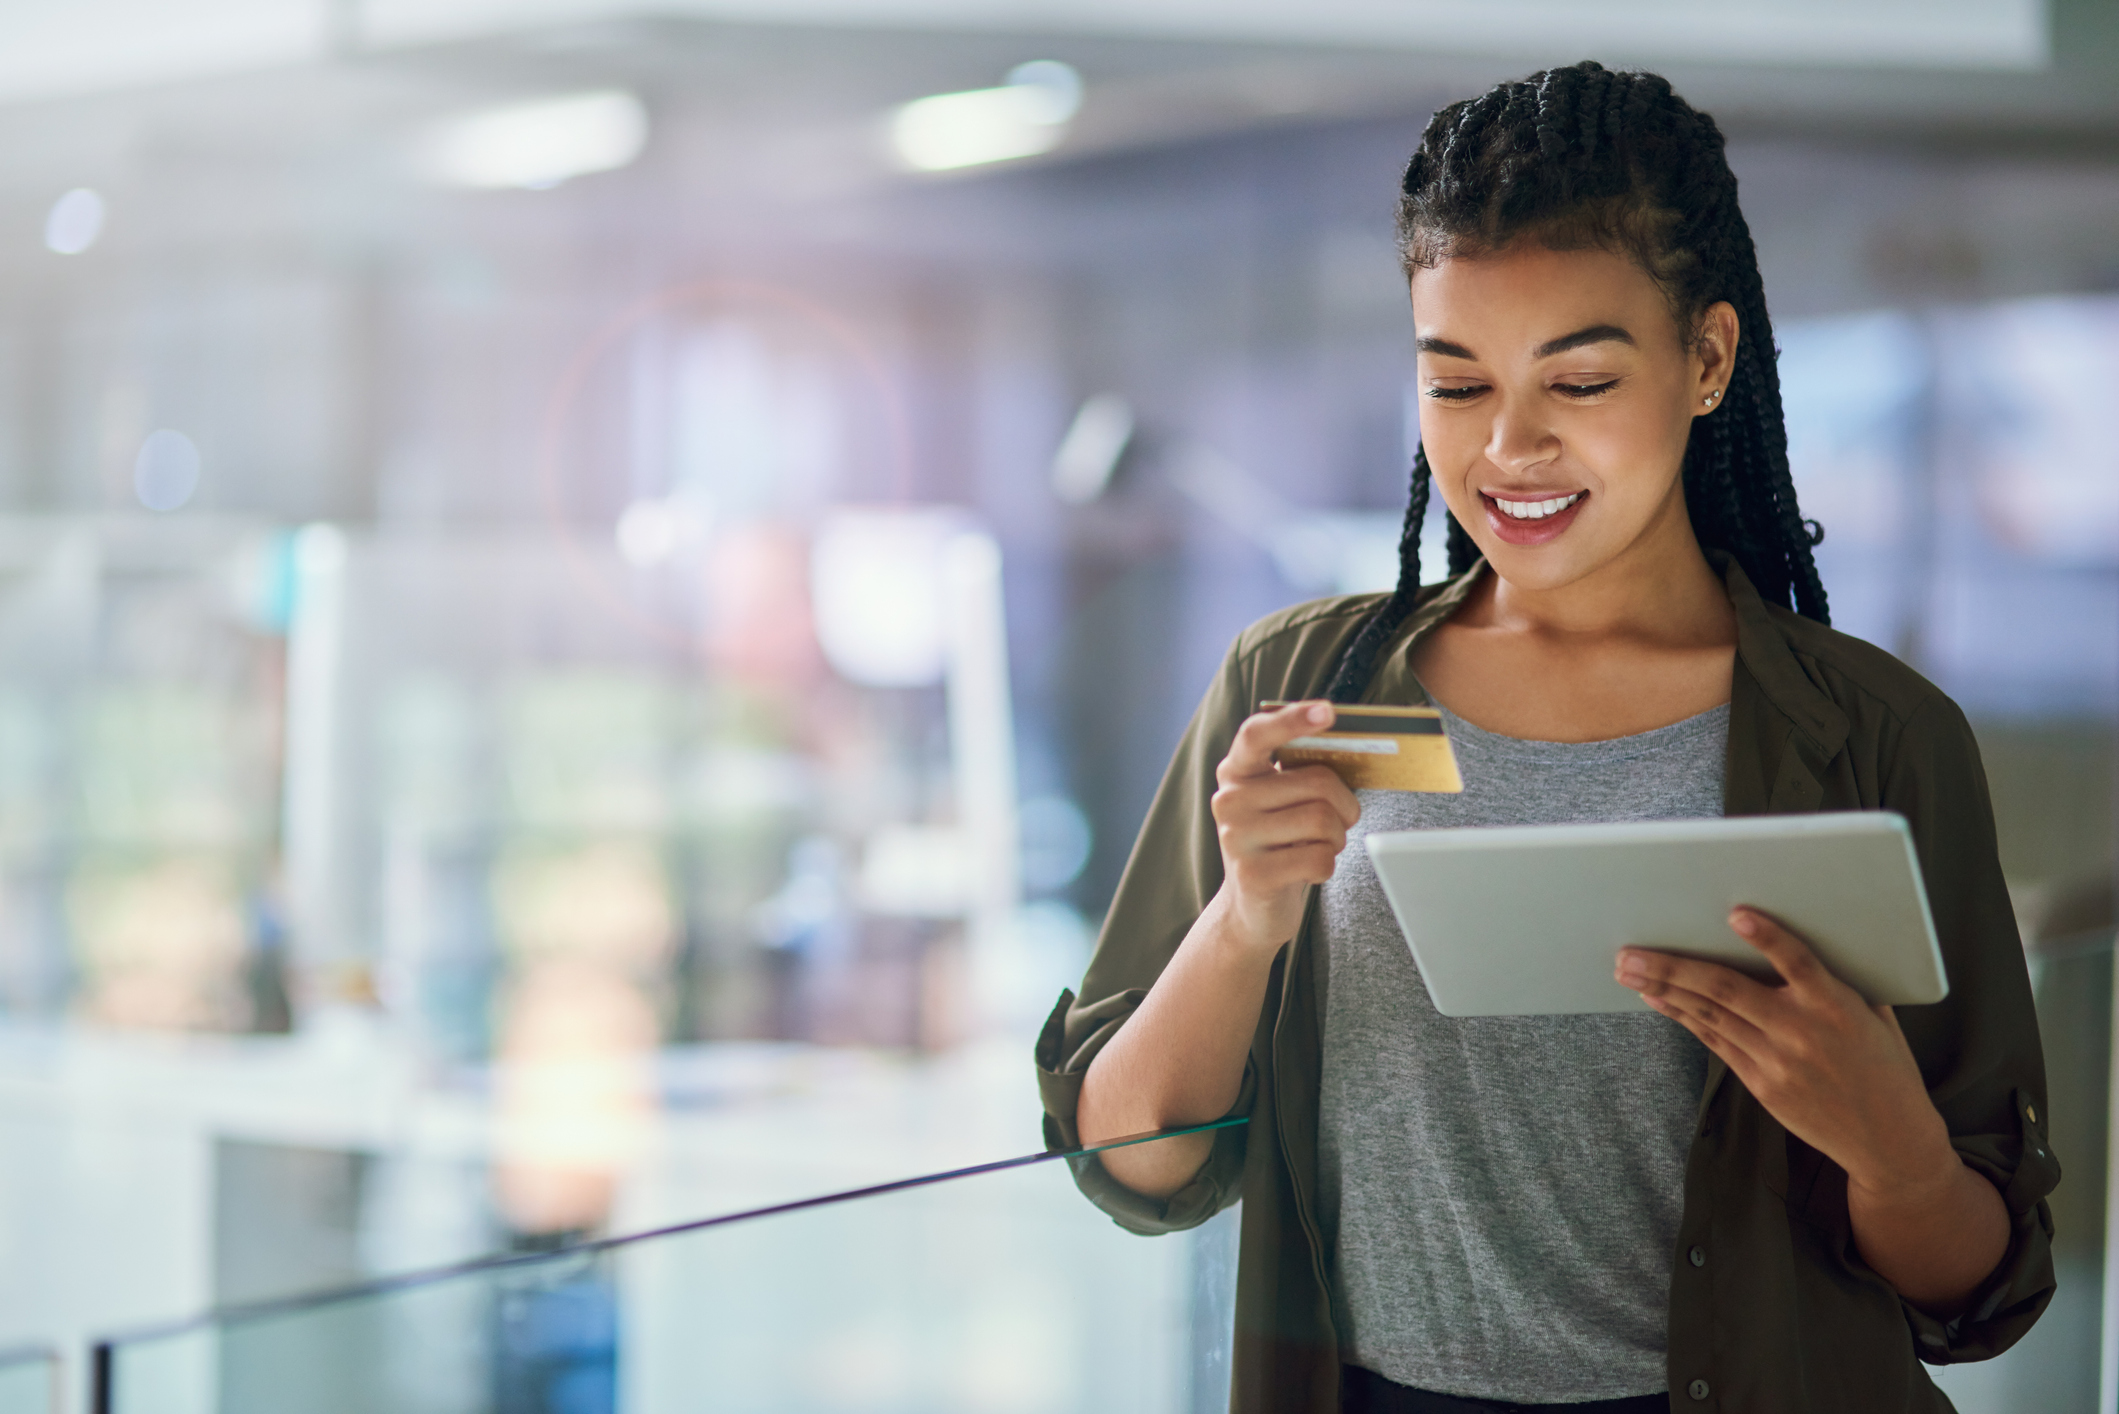 woman making a credit card purchase on a tablet